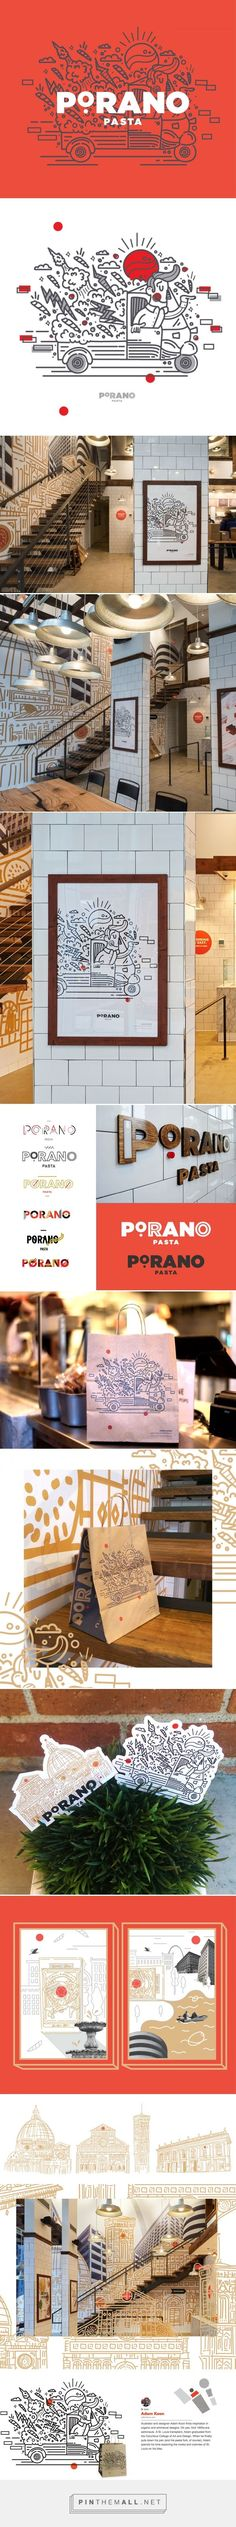 "Porano on Behance - created via <a href="""" rel=""nofollow"" target=""_blank""></a>"